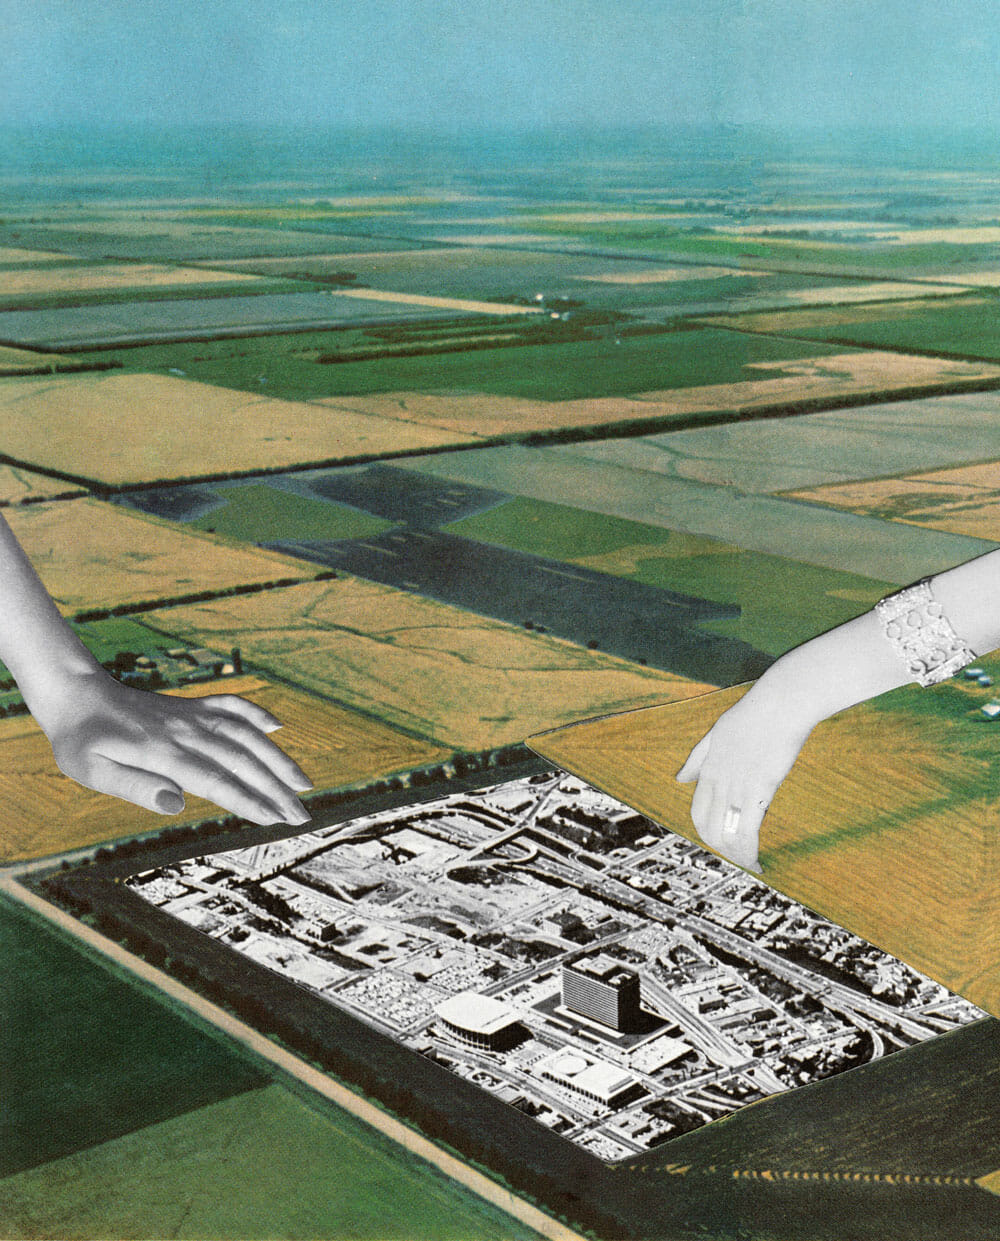 Two enormous hands plop a chunk of grey suburban sprawl on lush green farmland.